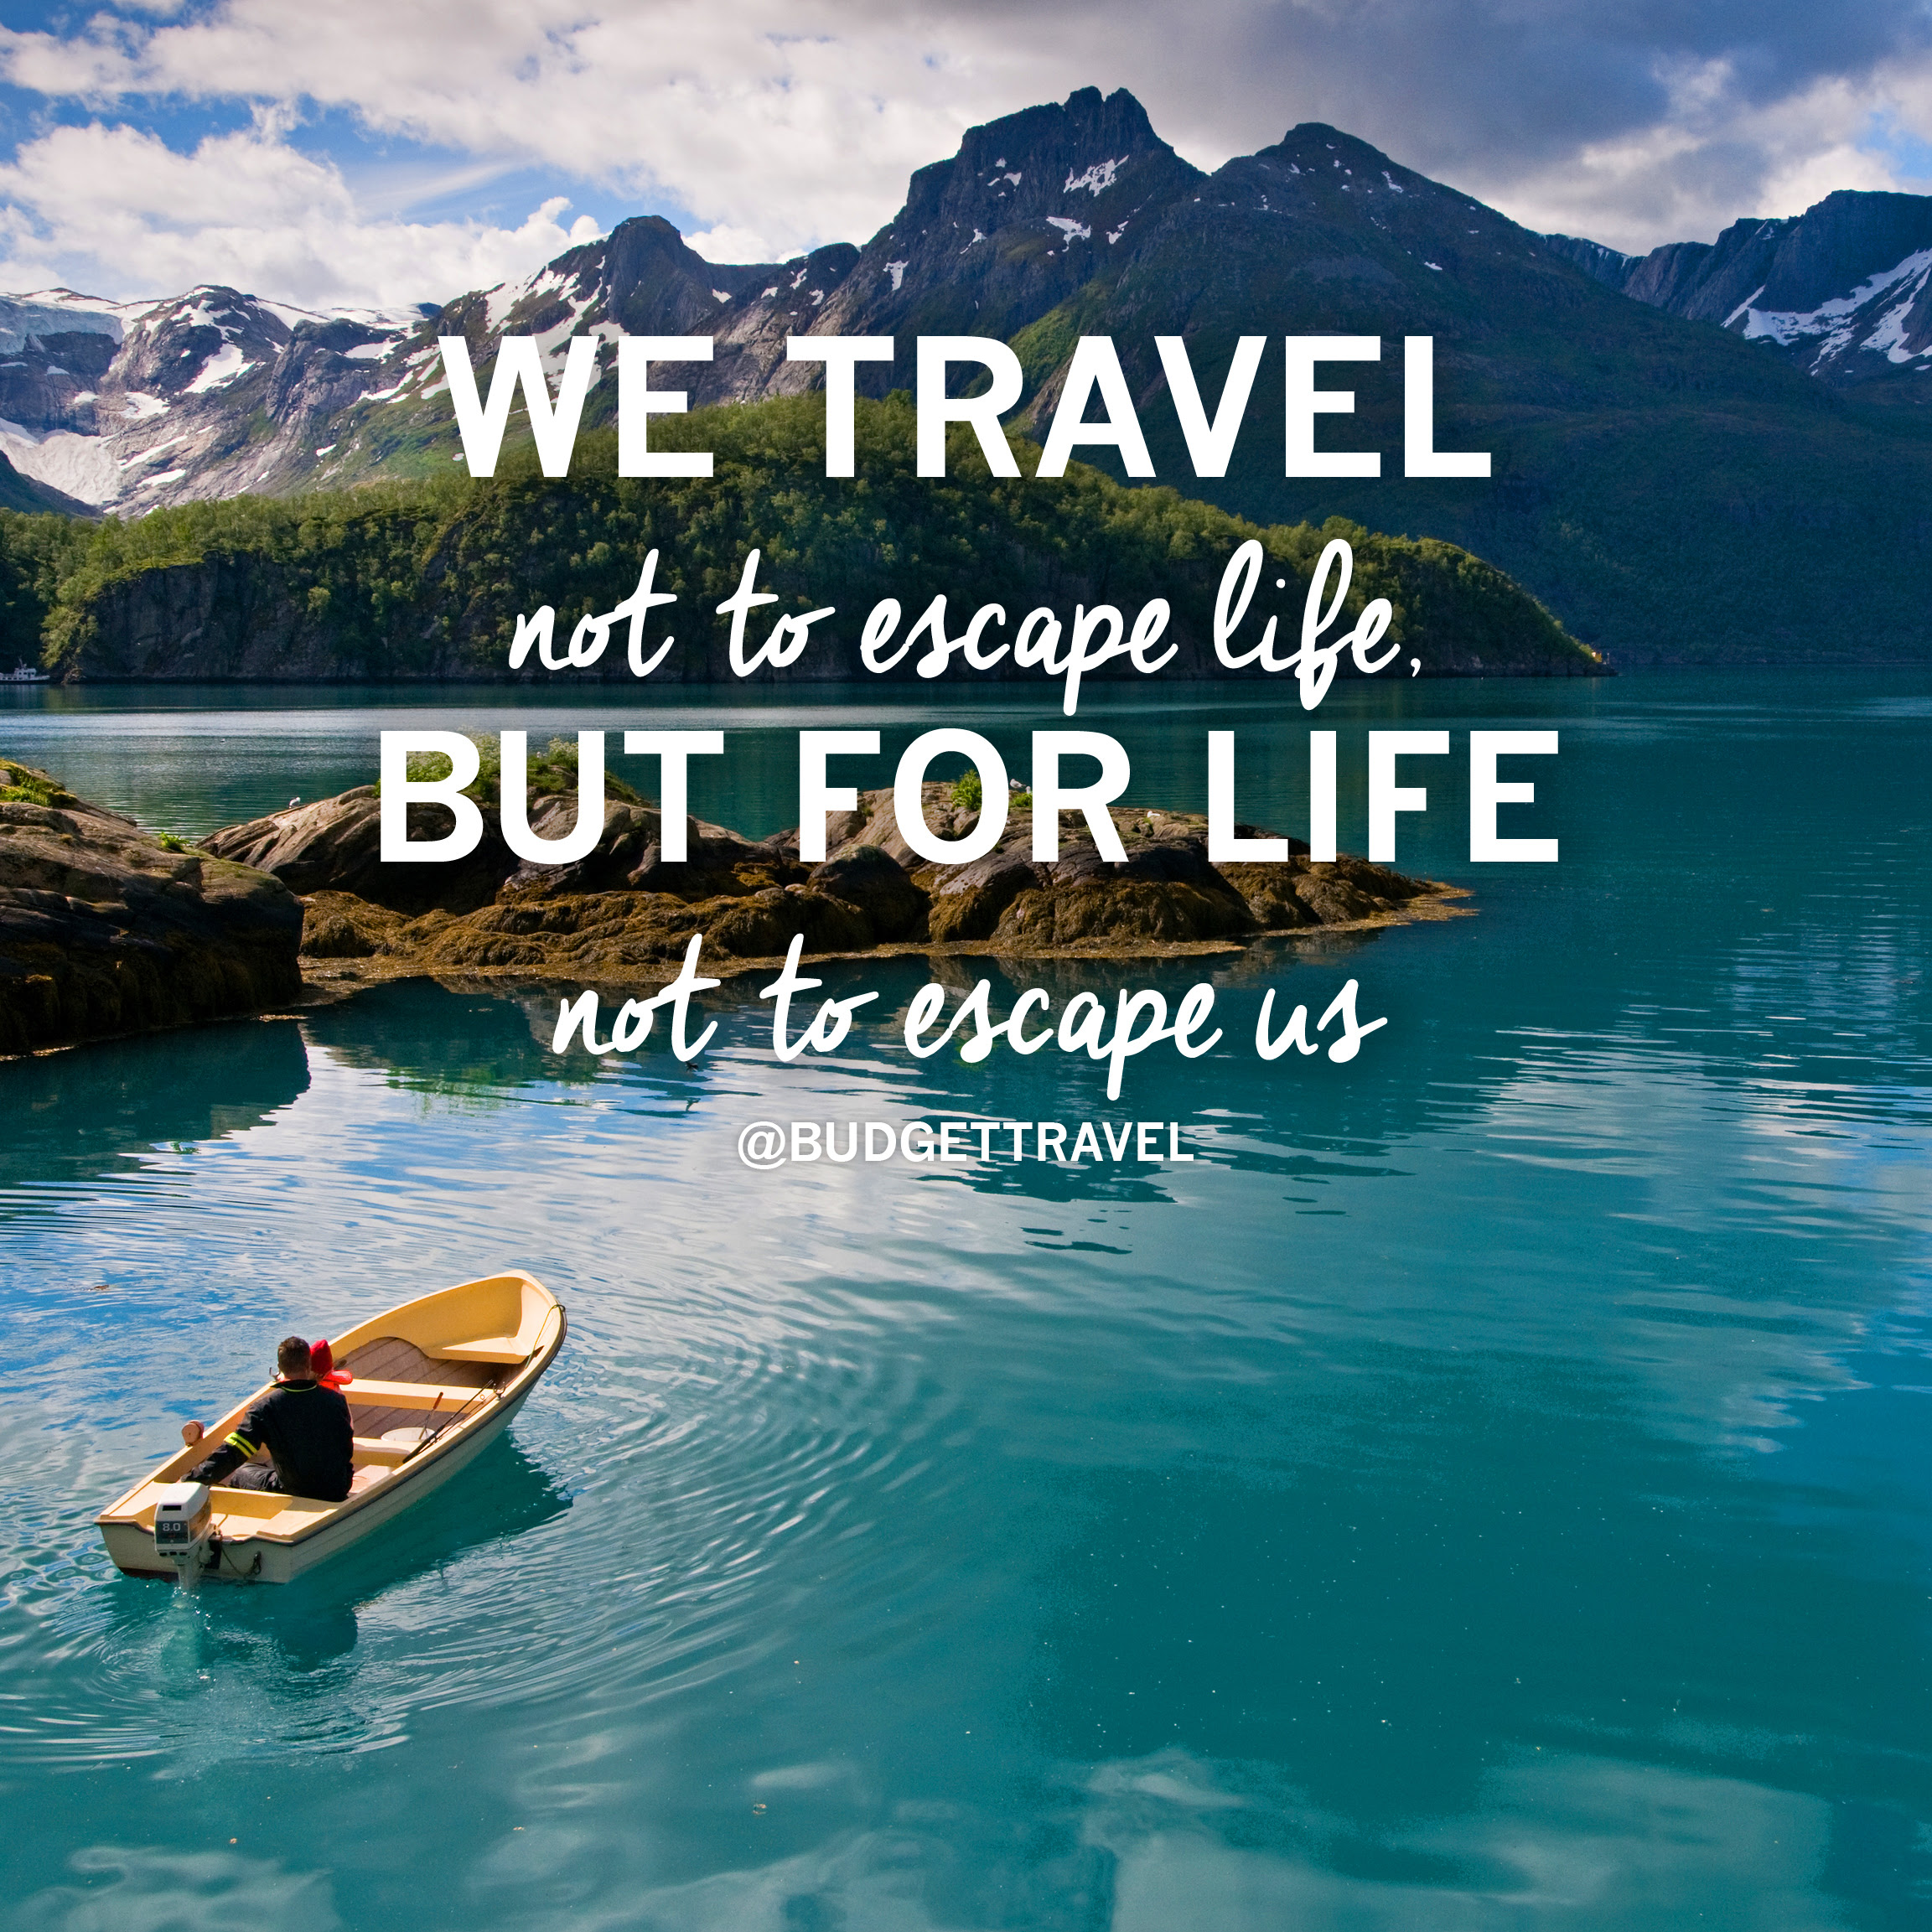 traveltoescapequote324201516520_original